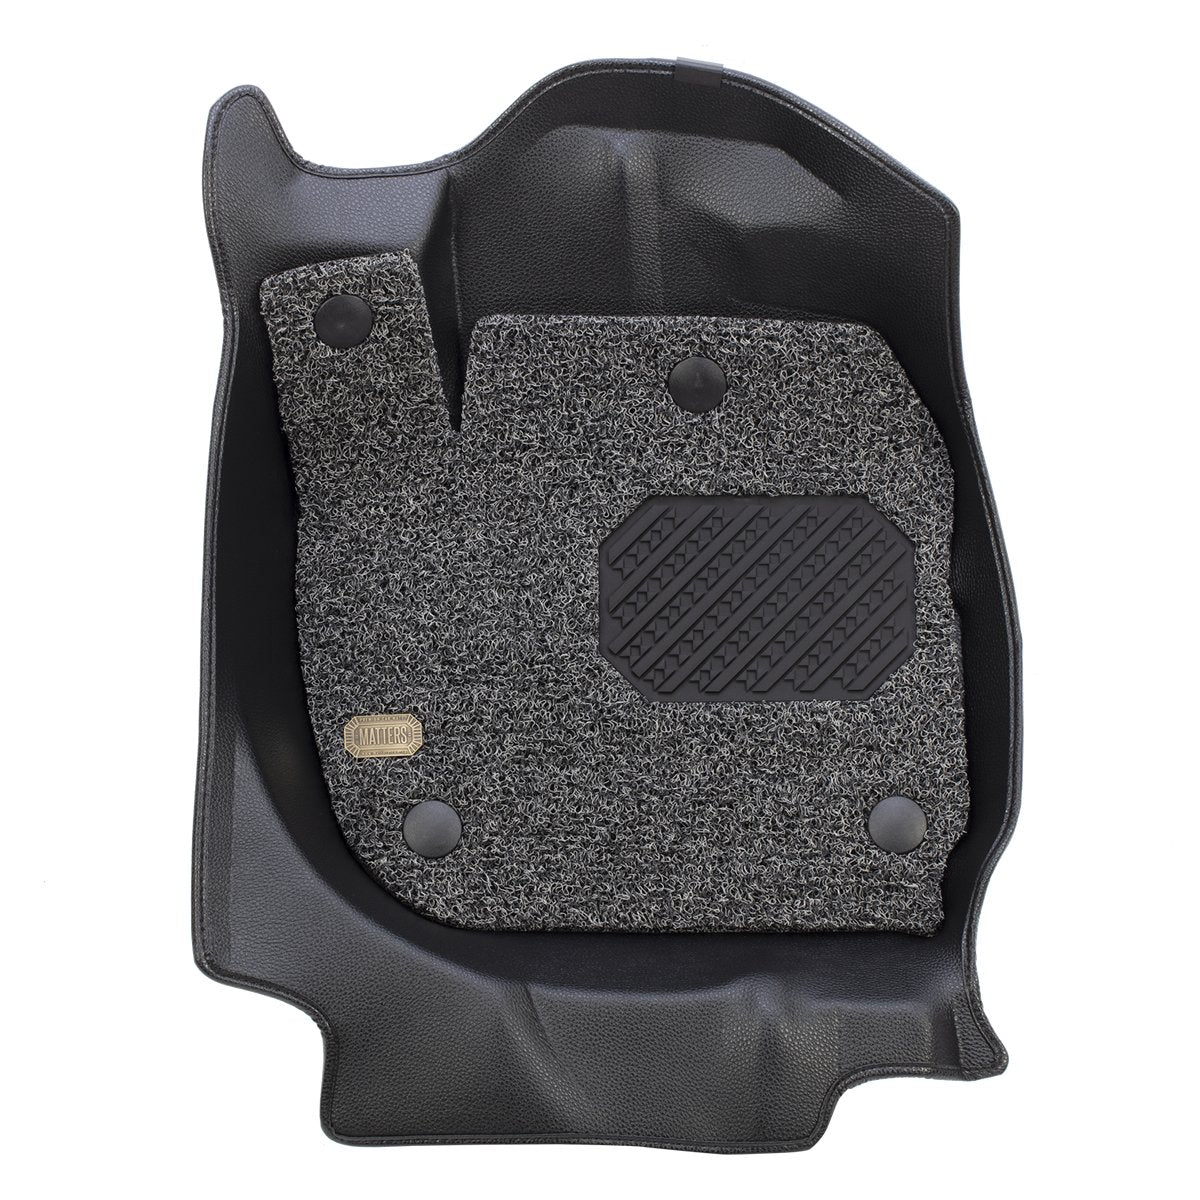 MATTERS 6D Car Mat - Toyota Sienta (Black) (XP170)